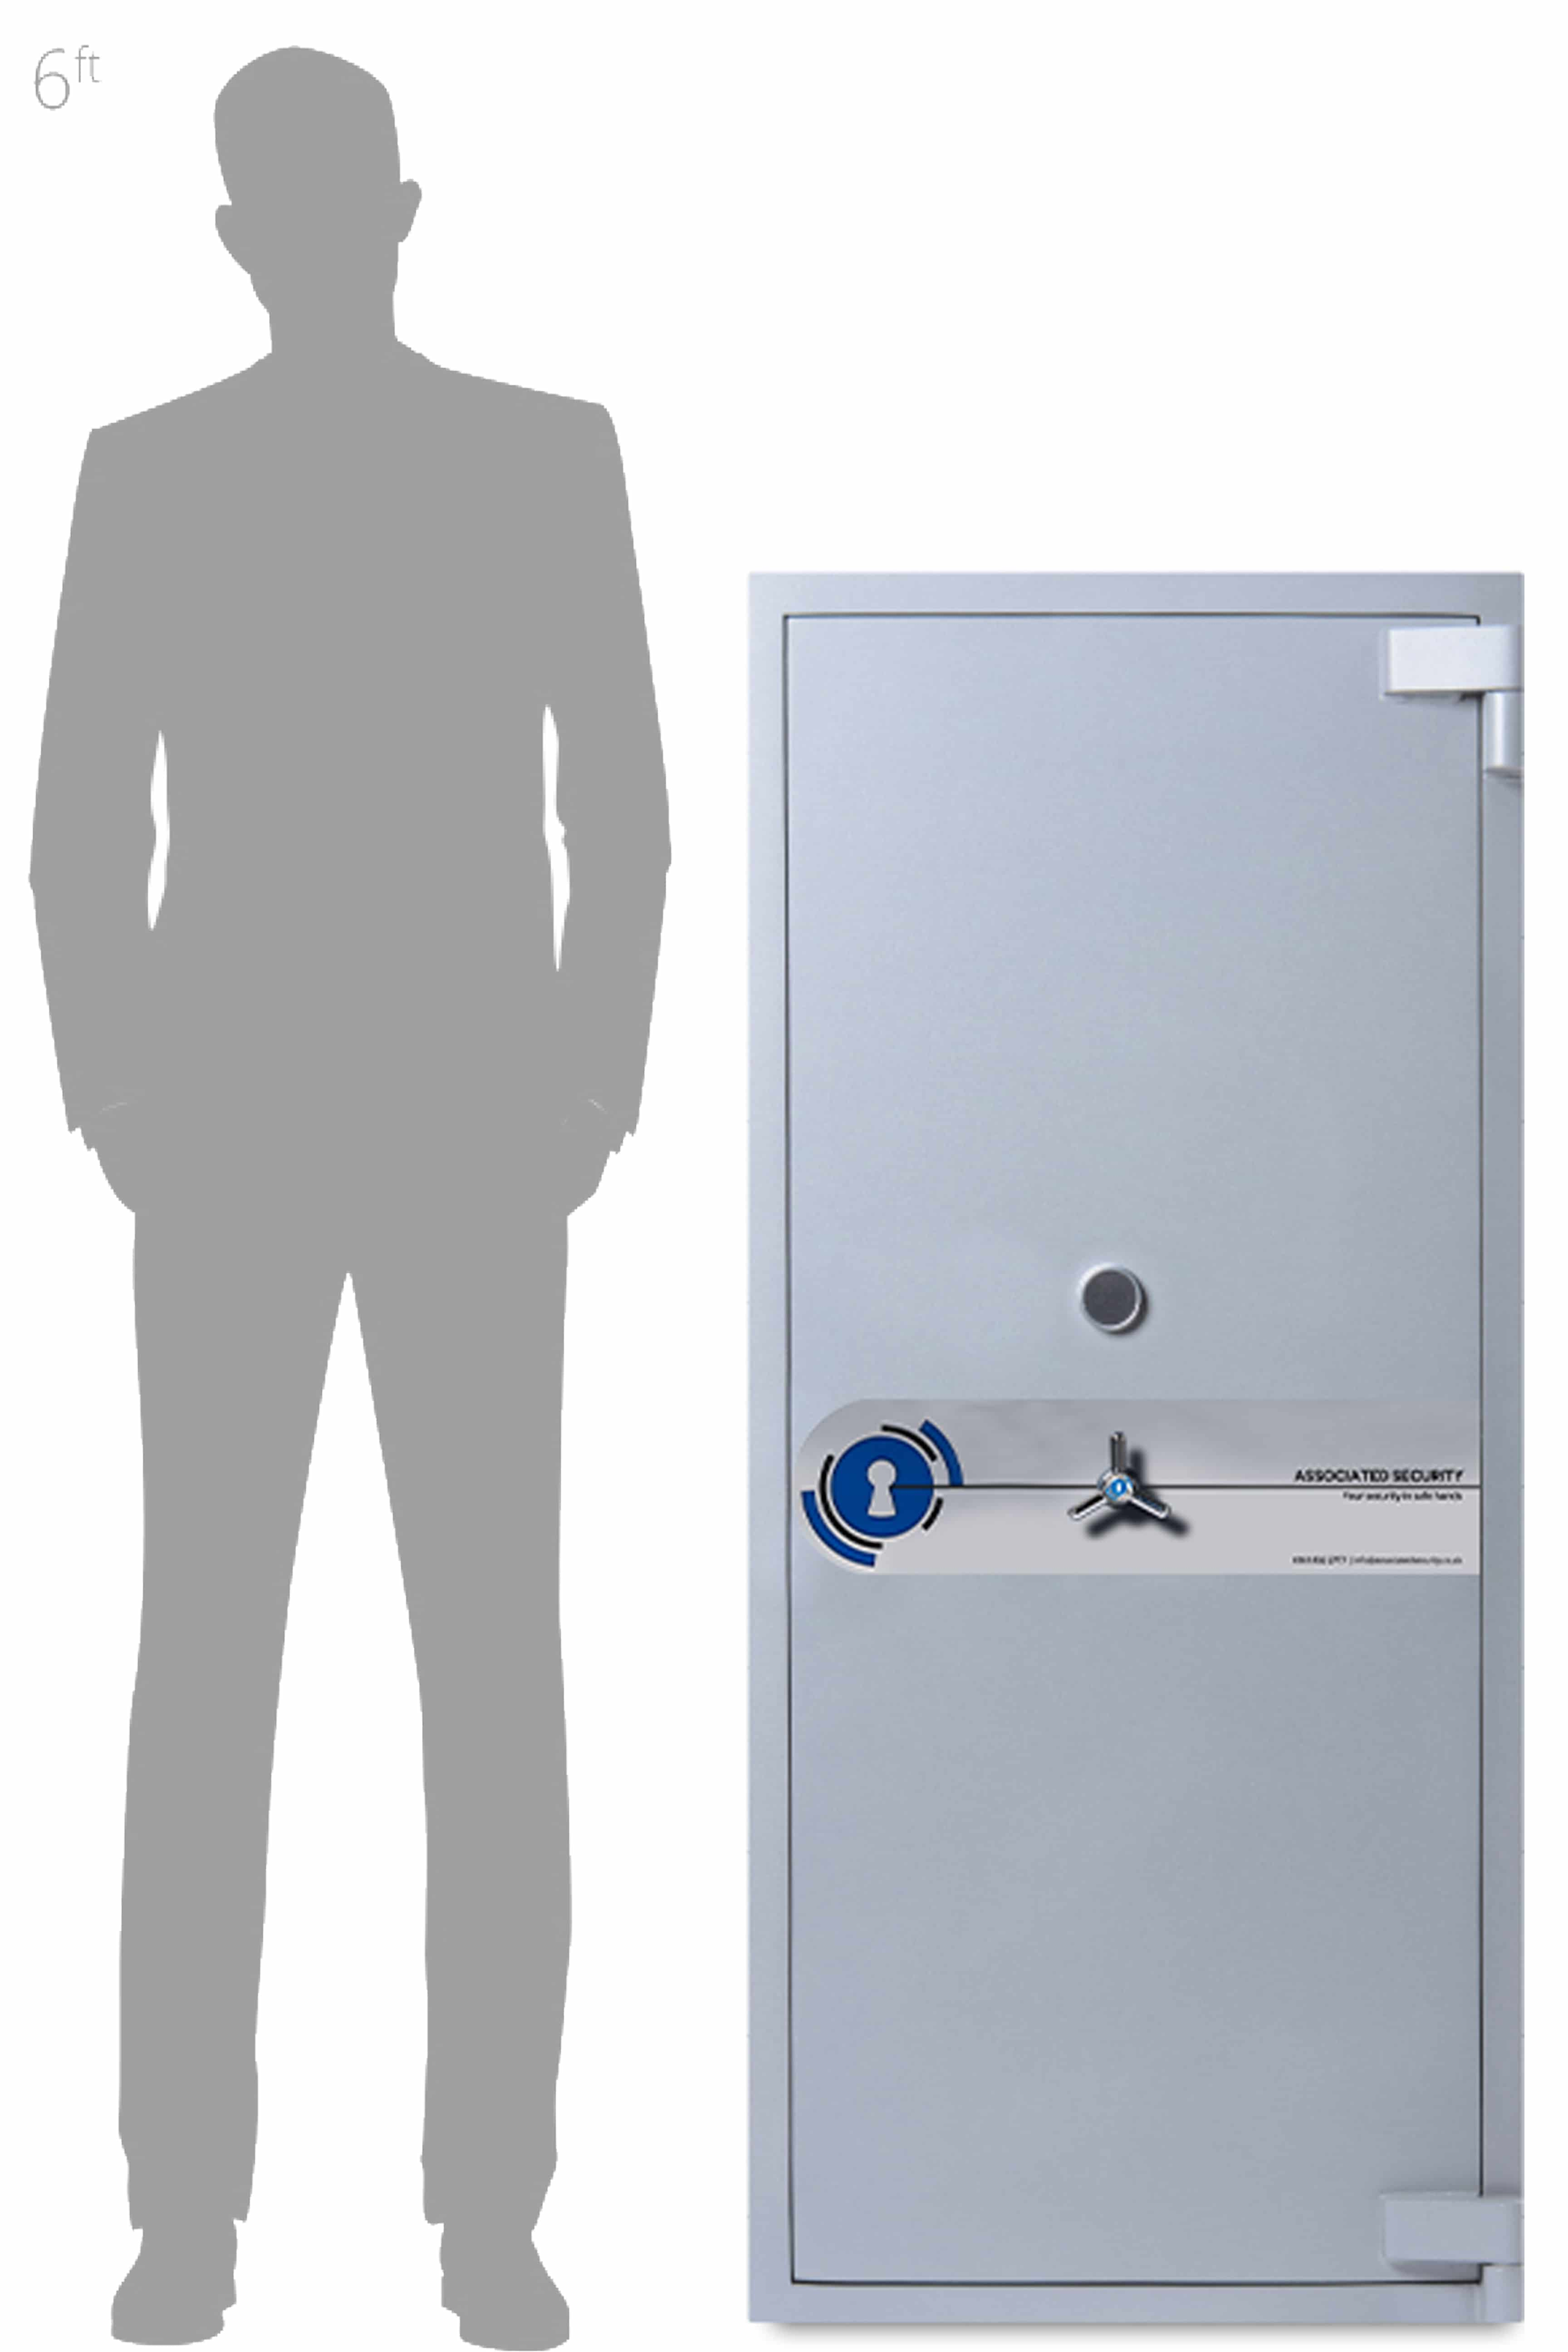 Associated Security- -AiS-Insurance-Approved- Made In Britain-Graded Safes